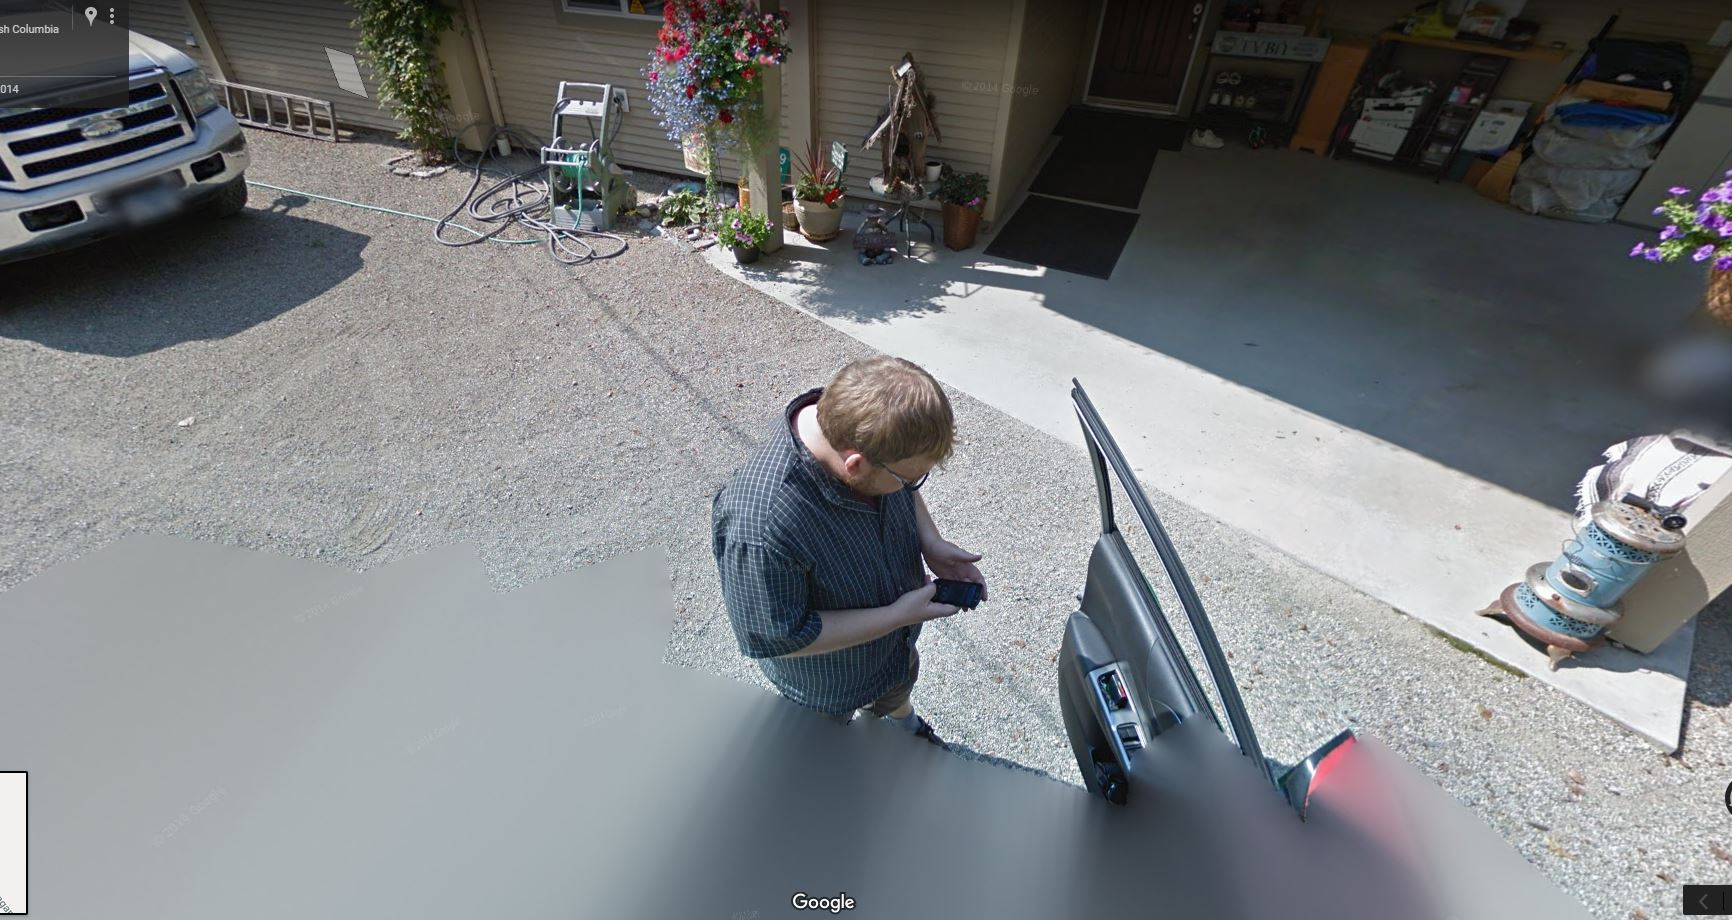 Google Street View Driver Lost – checking Google Maps for Directions